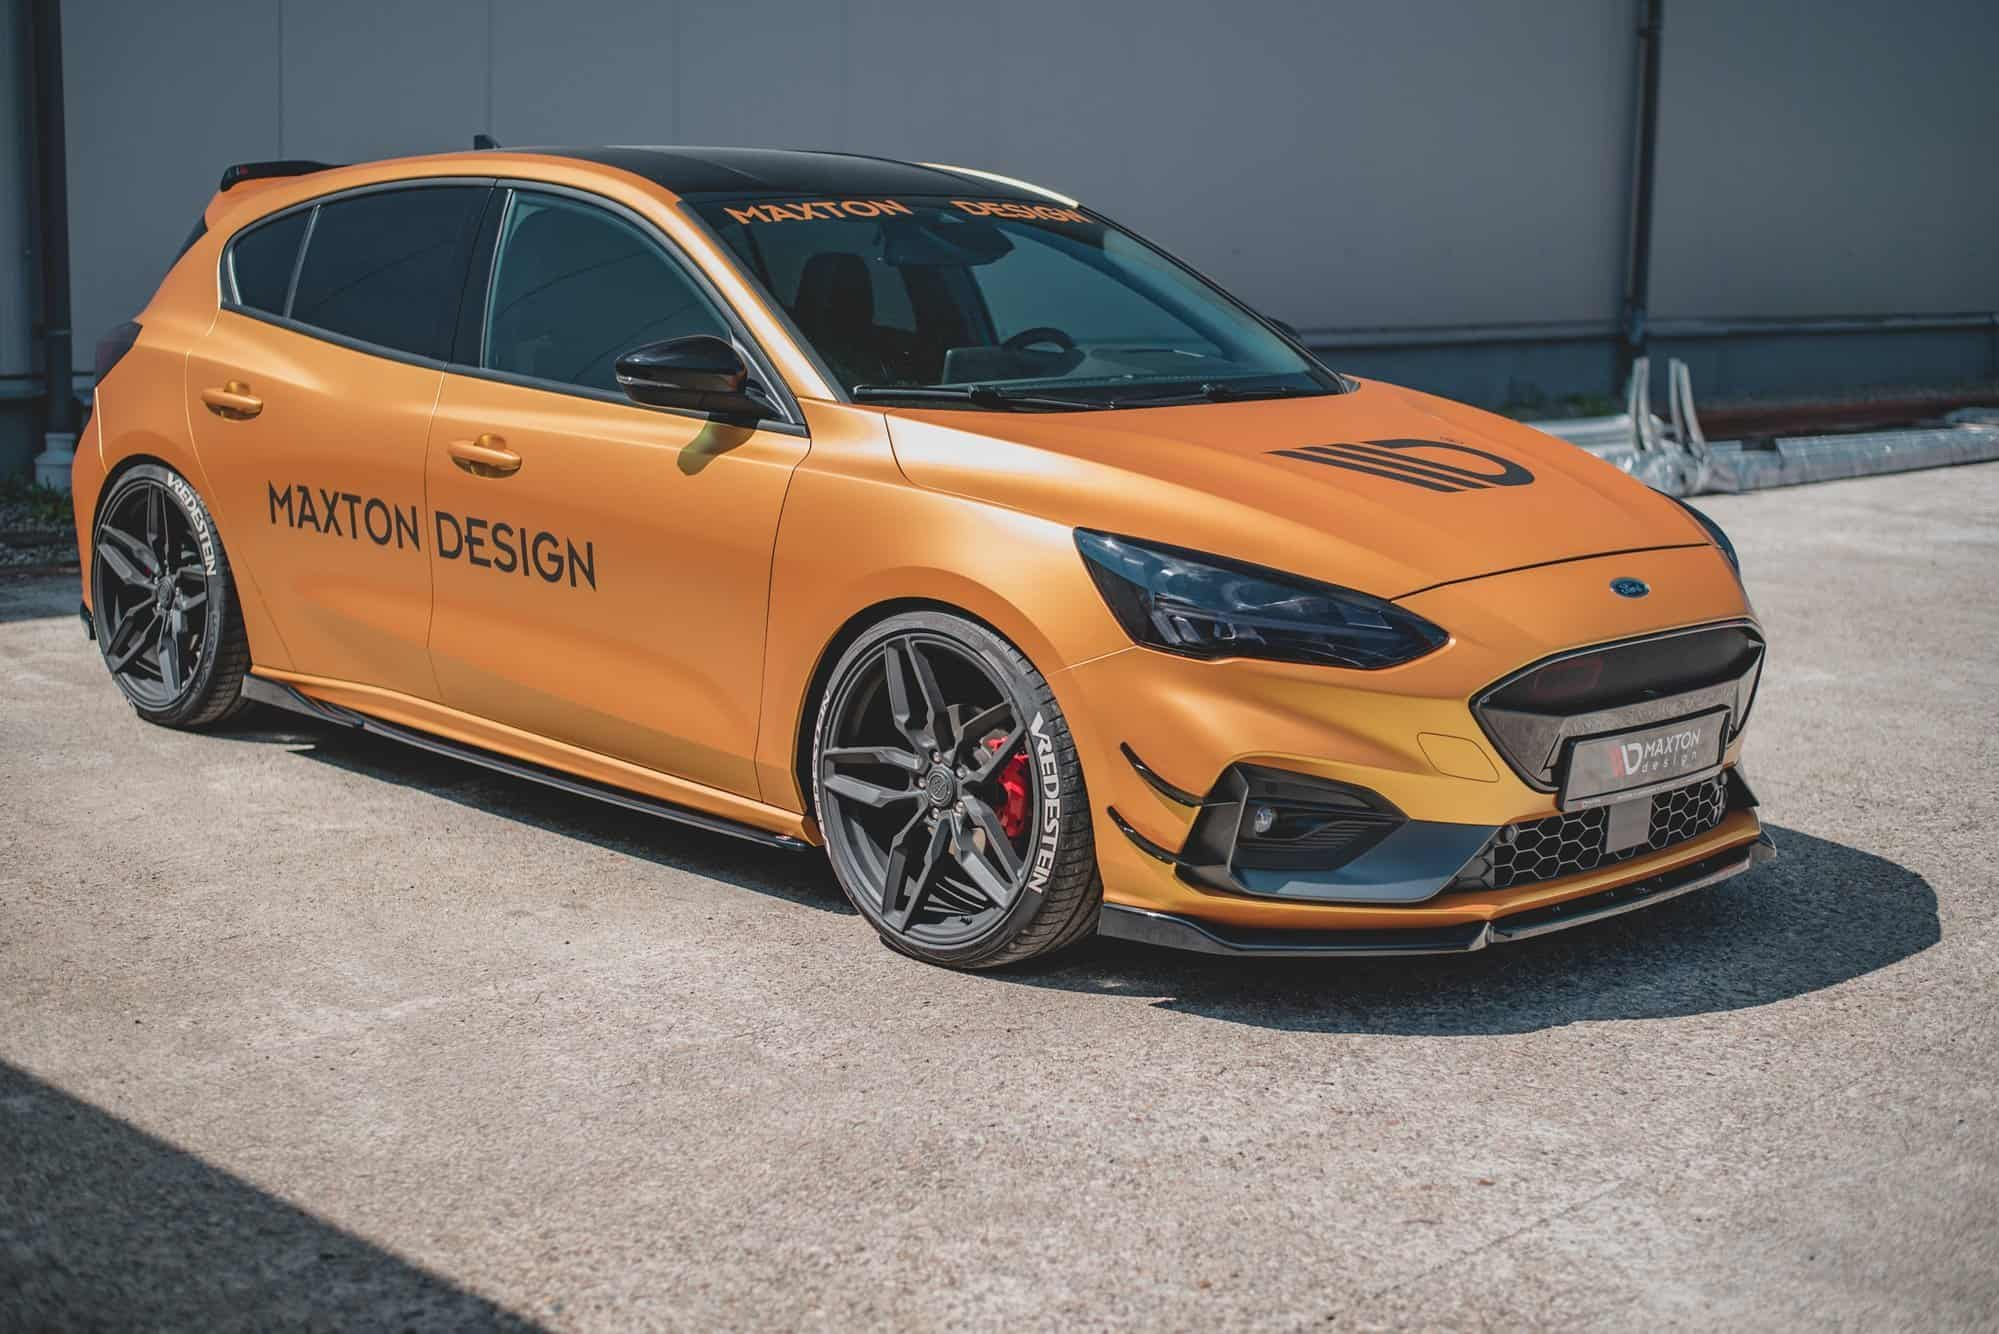 Ford Focus ST 2020 Aero kit by Maxton Design